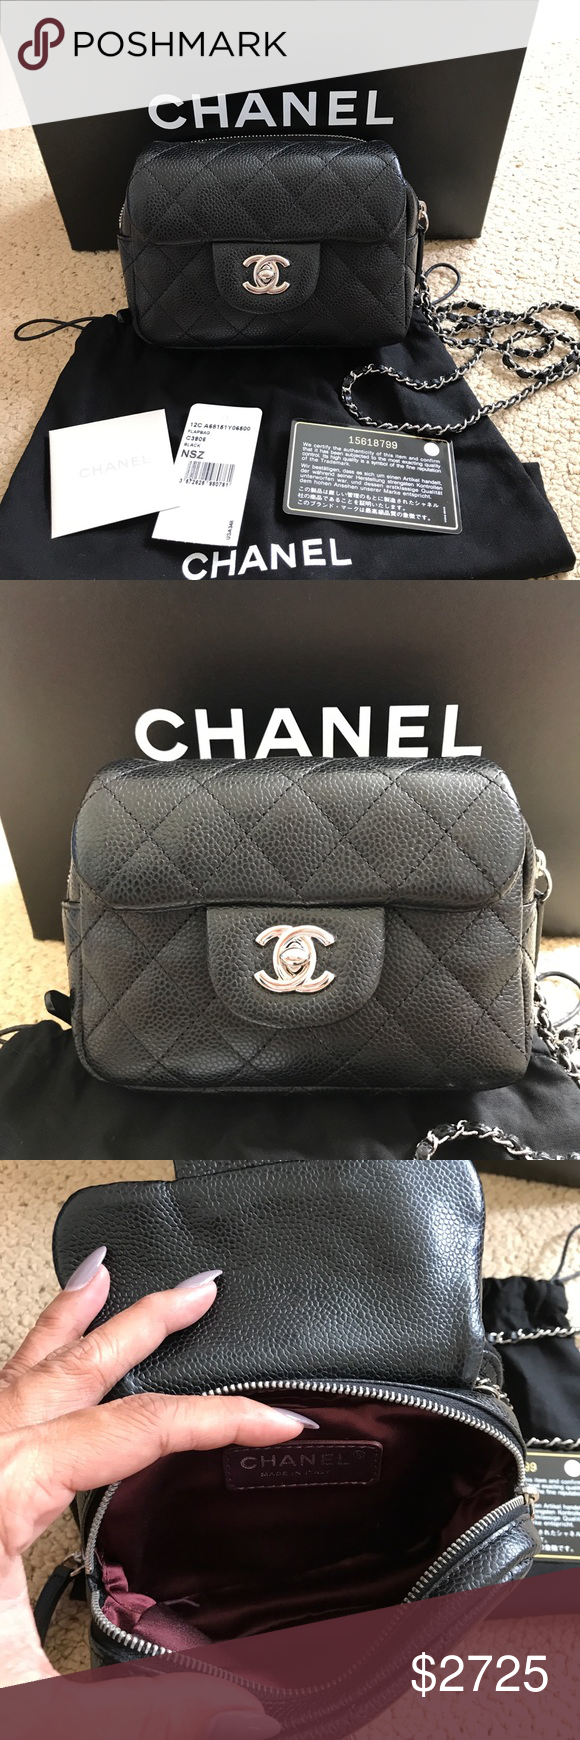 7077e926f35 CHANEL Mini Flap Black Caviar Wallet on Chain WOC This gorgeous Chanel  Crossbody mini WOC is